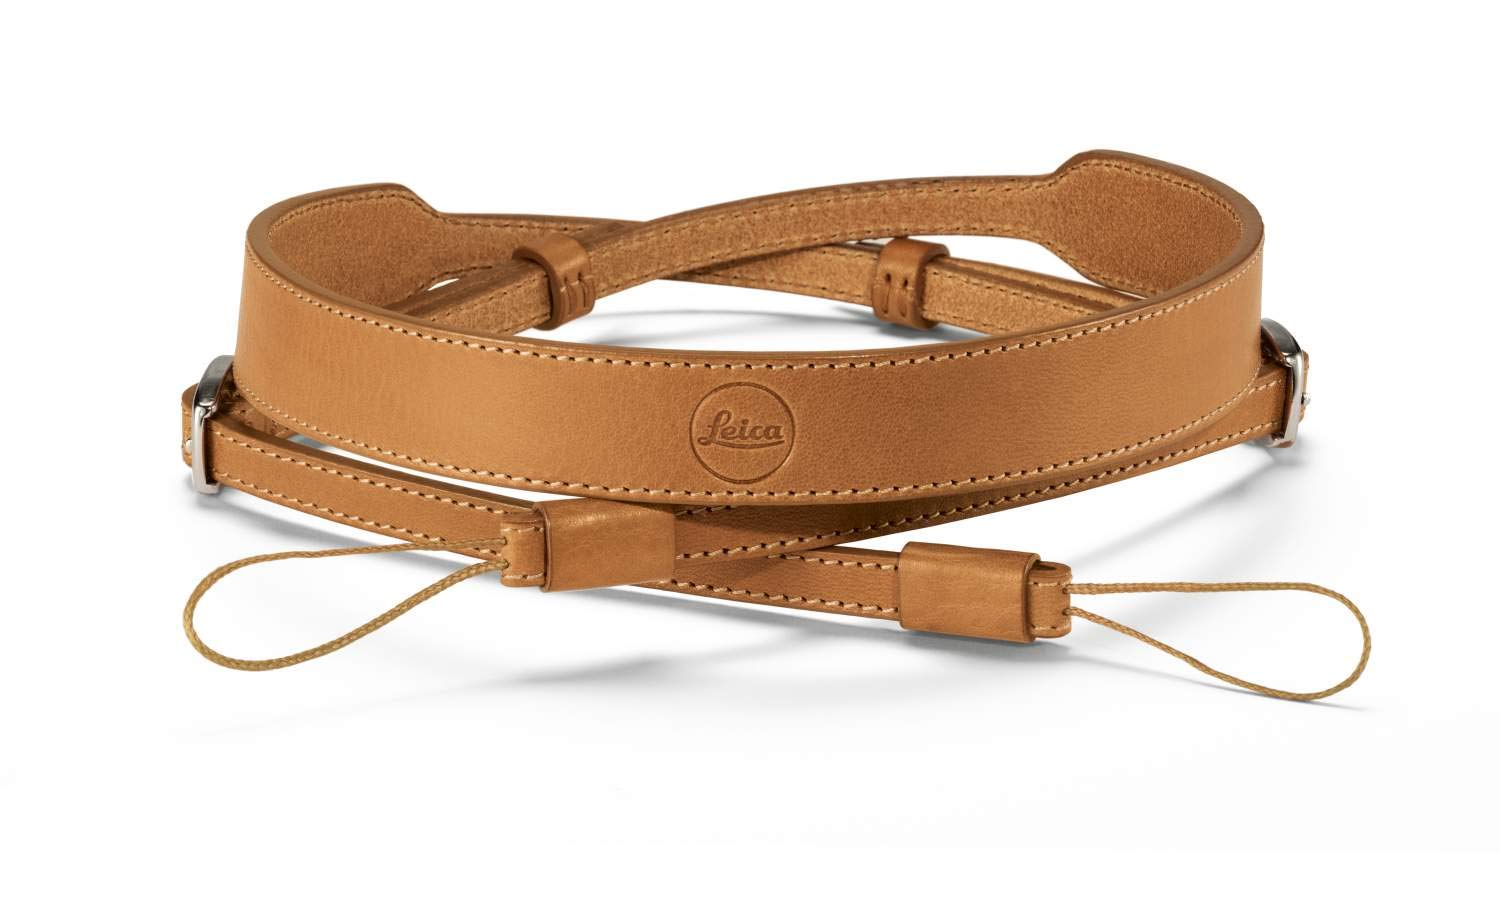 Leica D-Lux 7 Carrying Strap - Brown by Leica